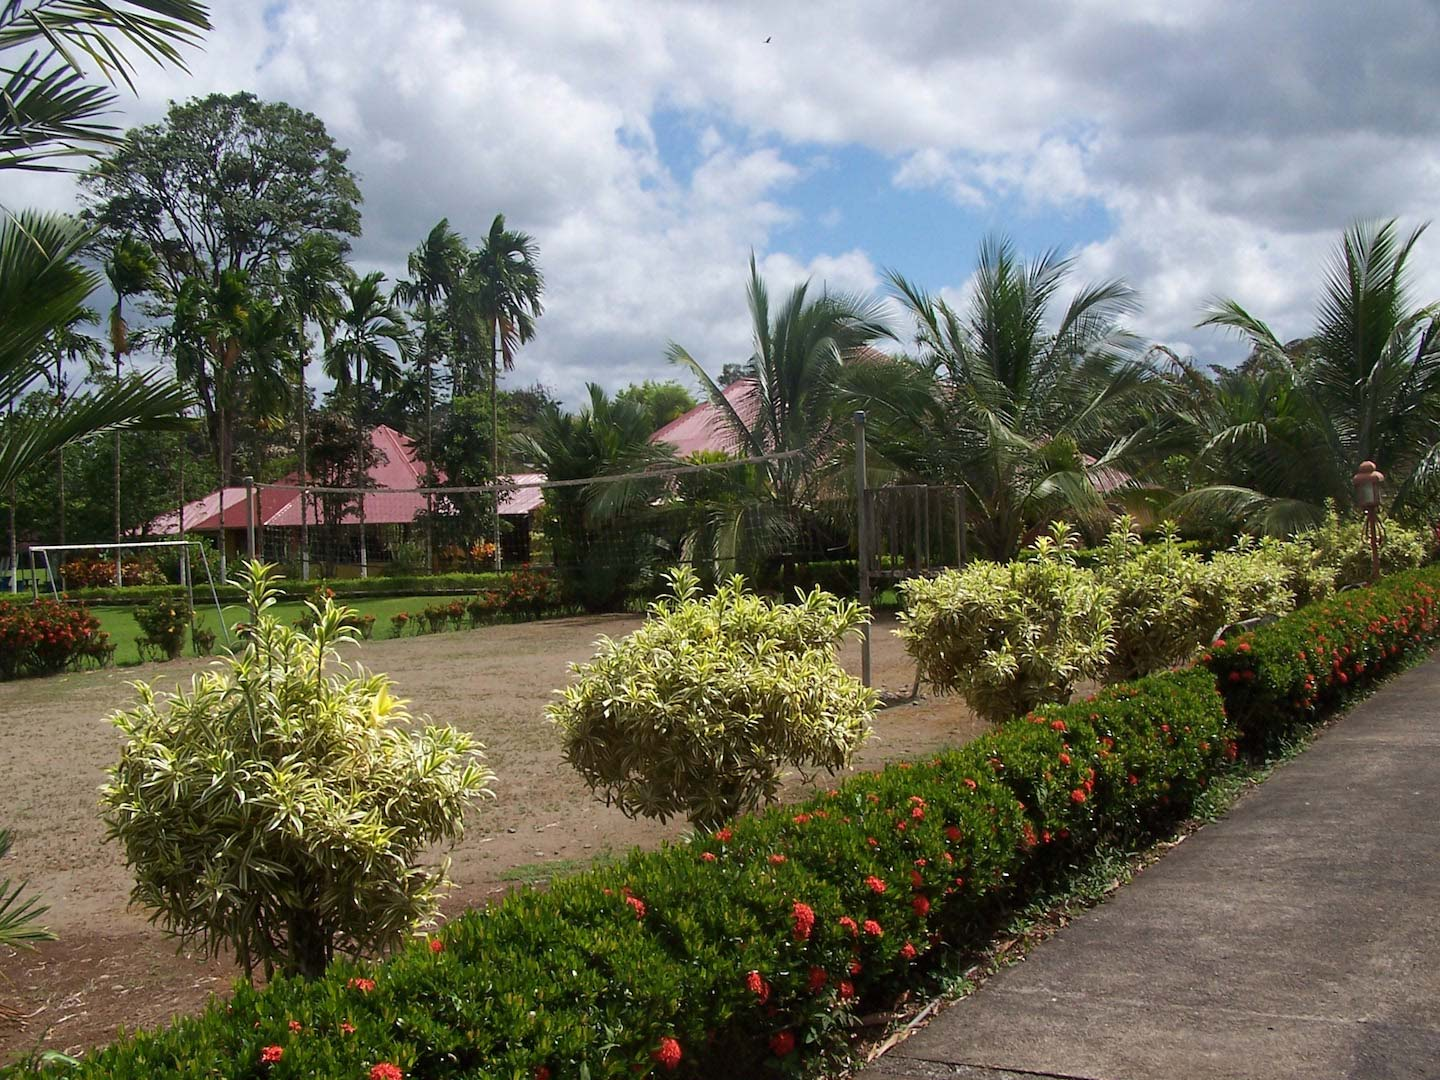 Lovely home in private tico/expat community of outdoors enthusiasts! Tennis courts, swimming pools, hiking trails - all maintained for you in the private, gated and secure community.